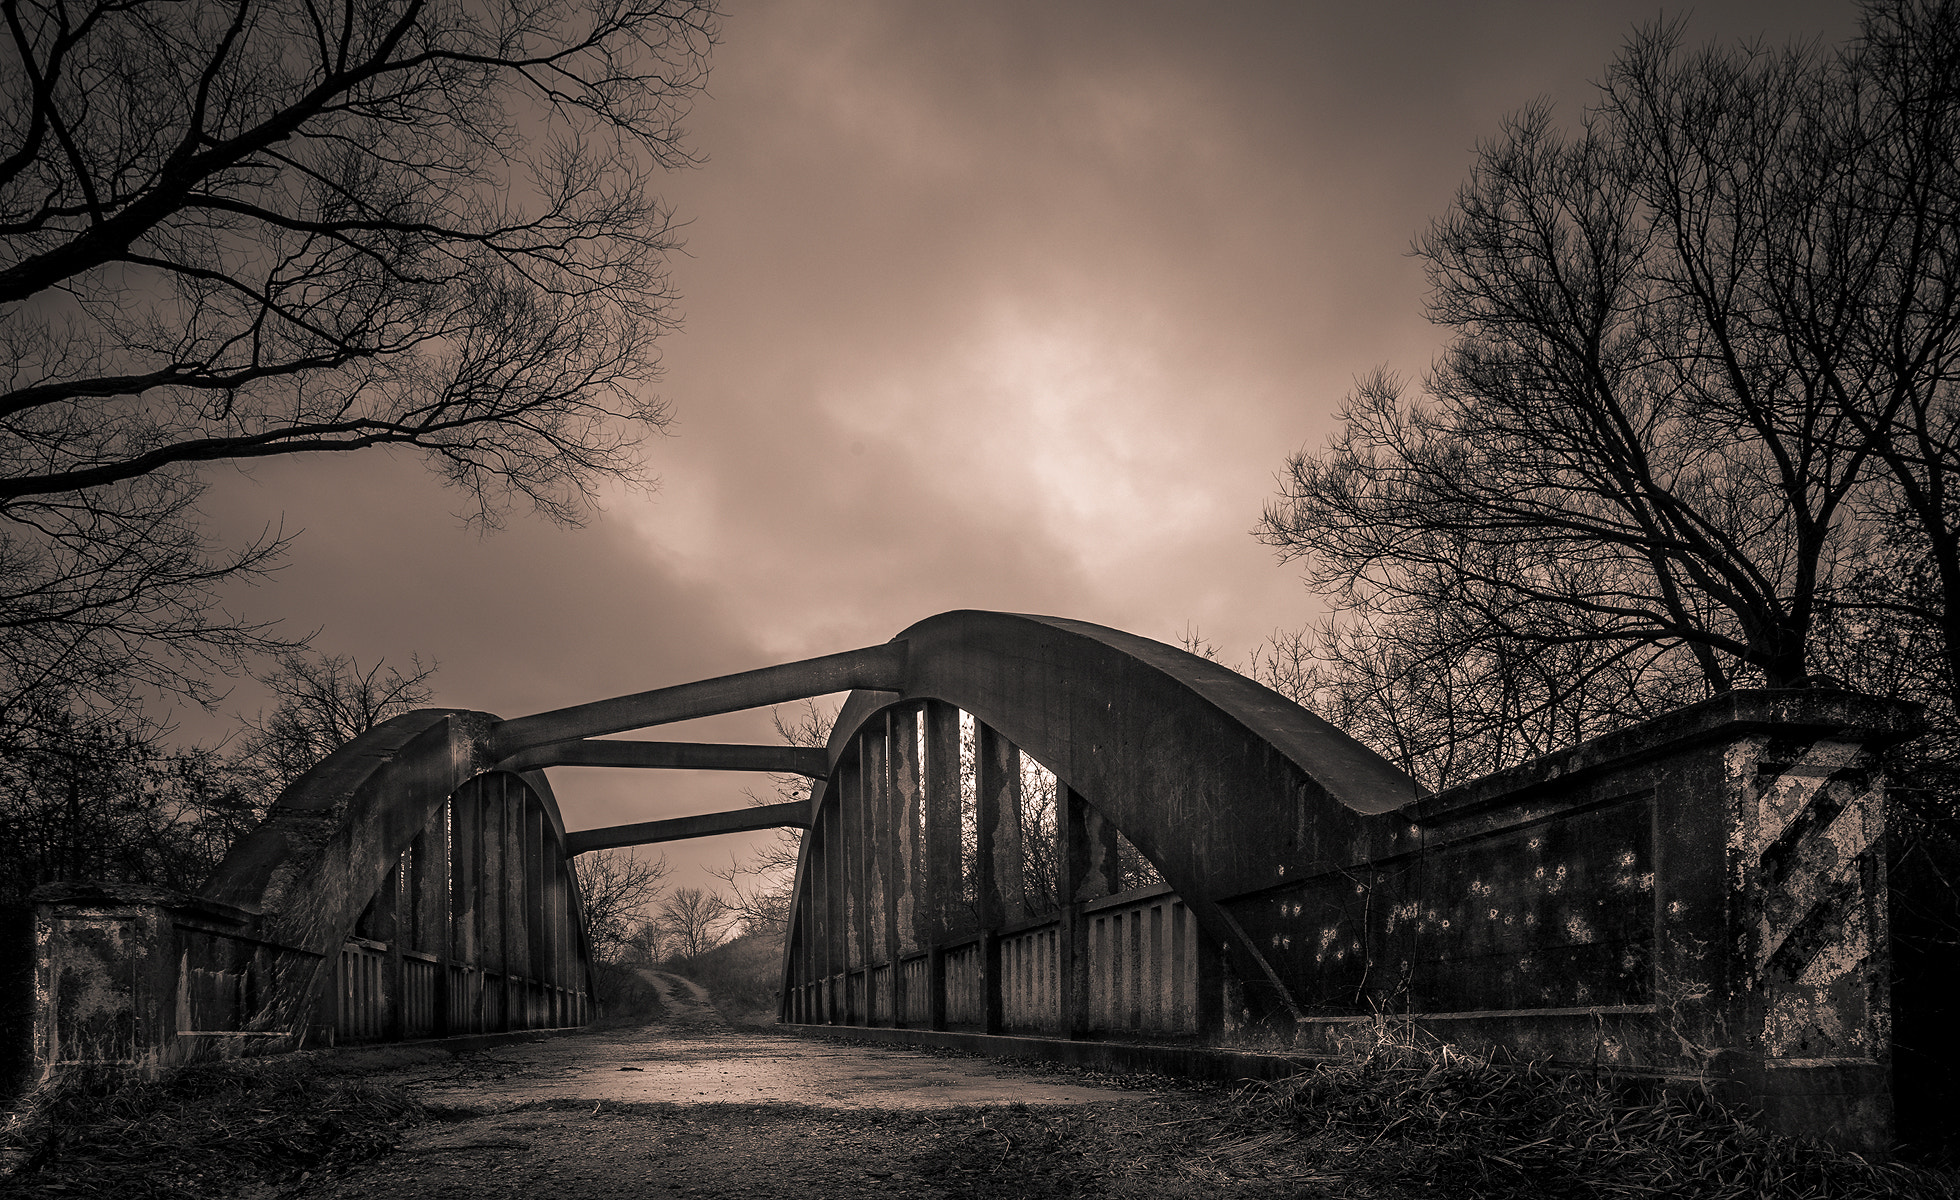 Photograph The Final Bridge by Peter FK on 500px